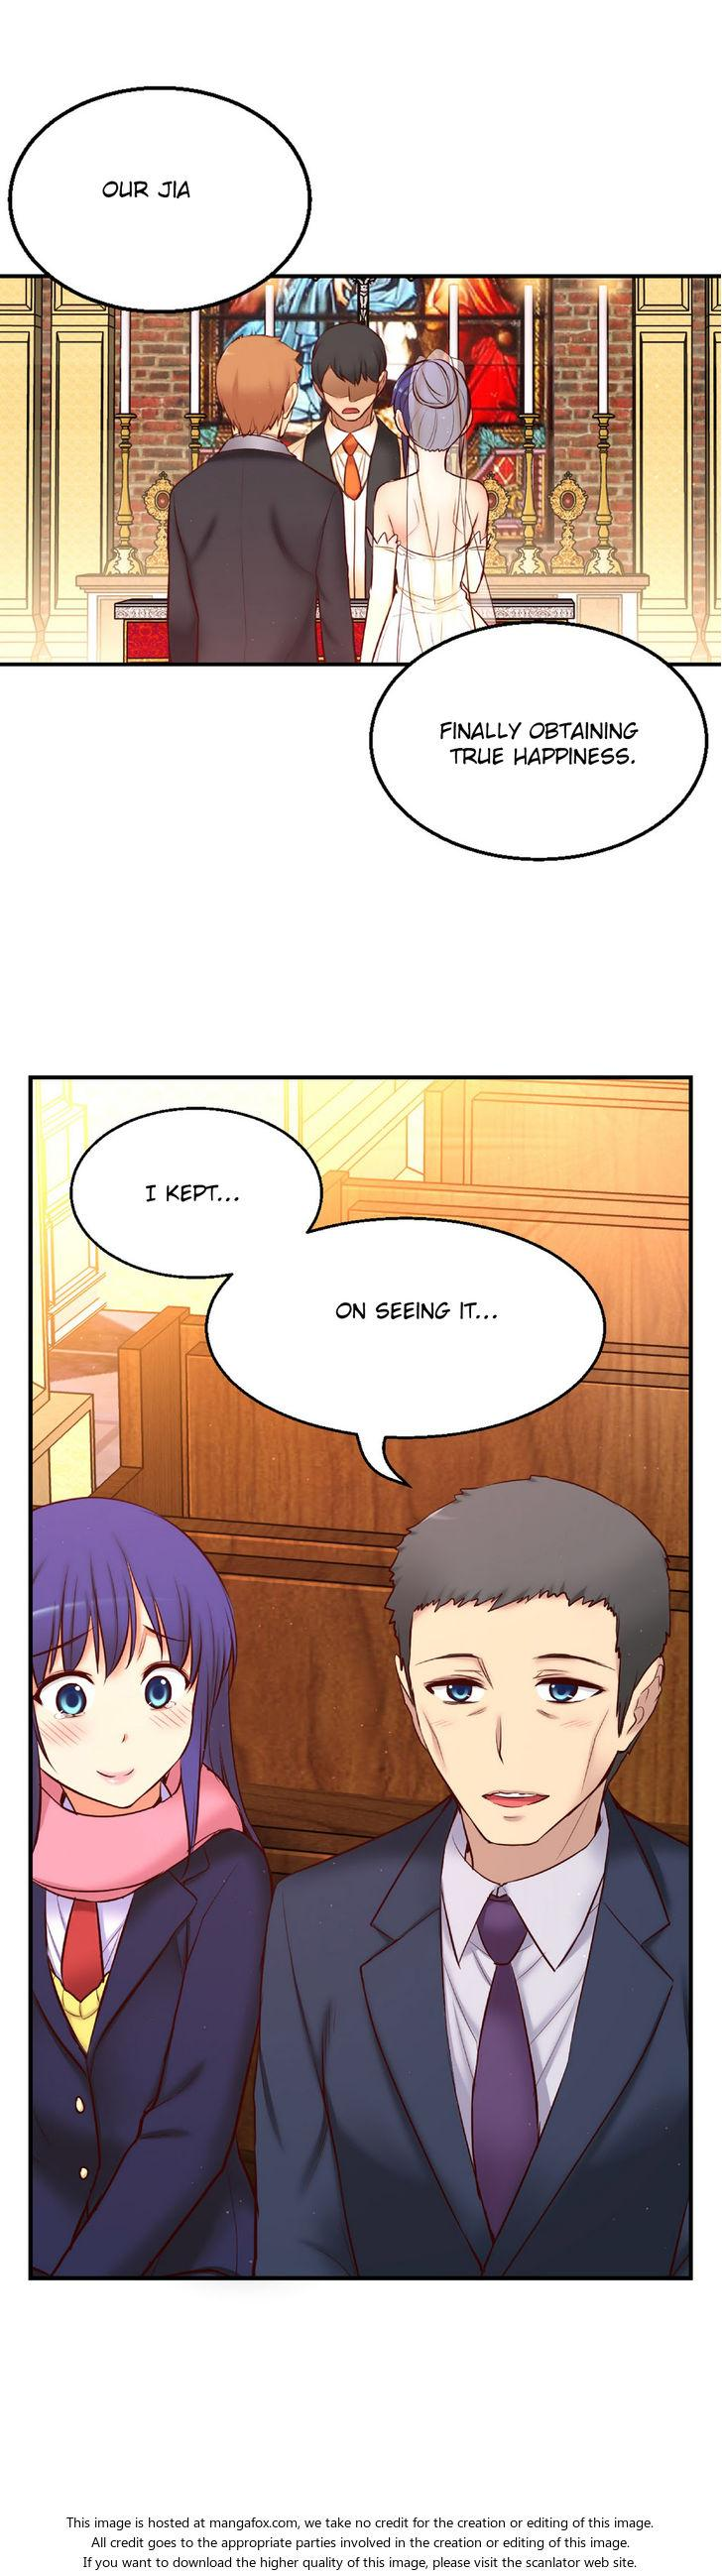 [Donggul Gom] She is Young (English) Part 1/2 1942